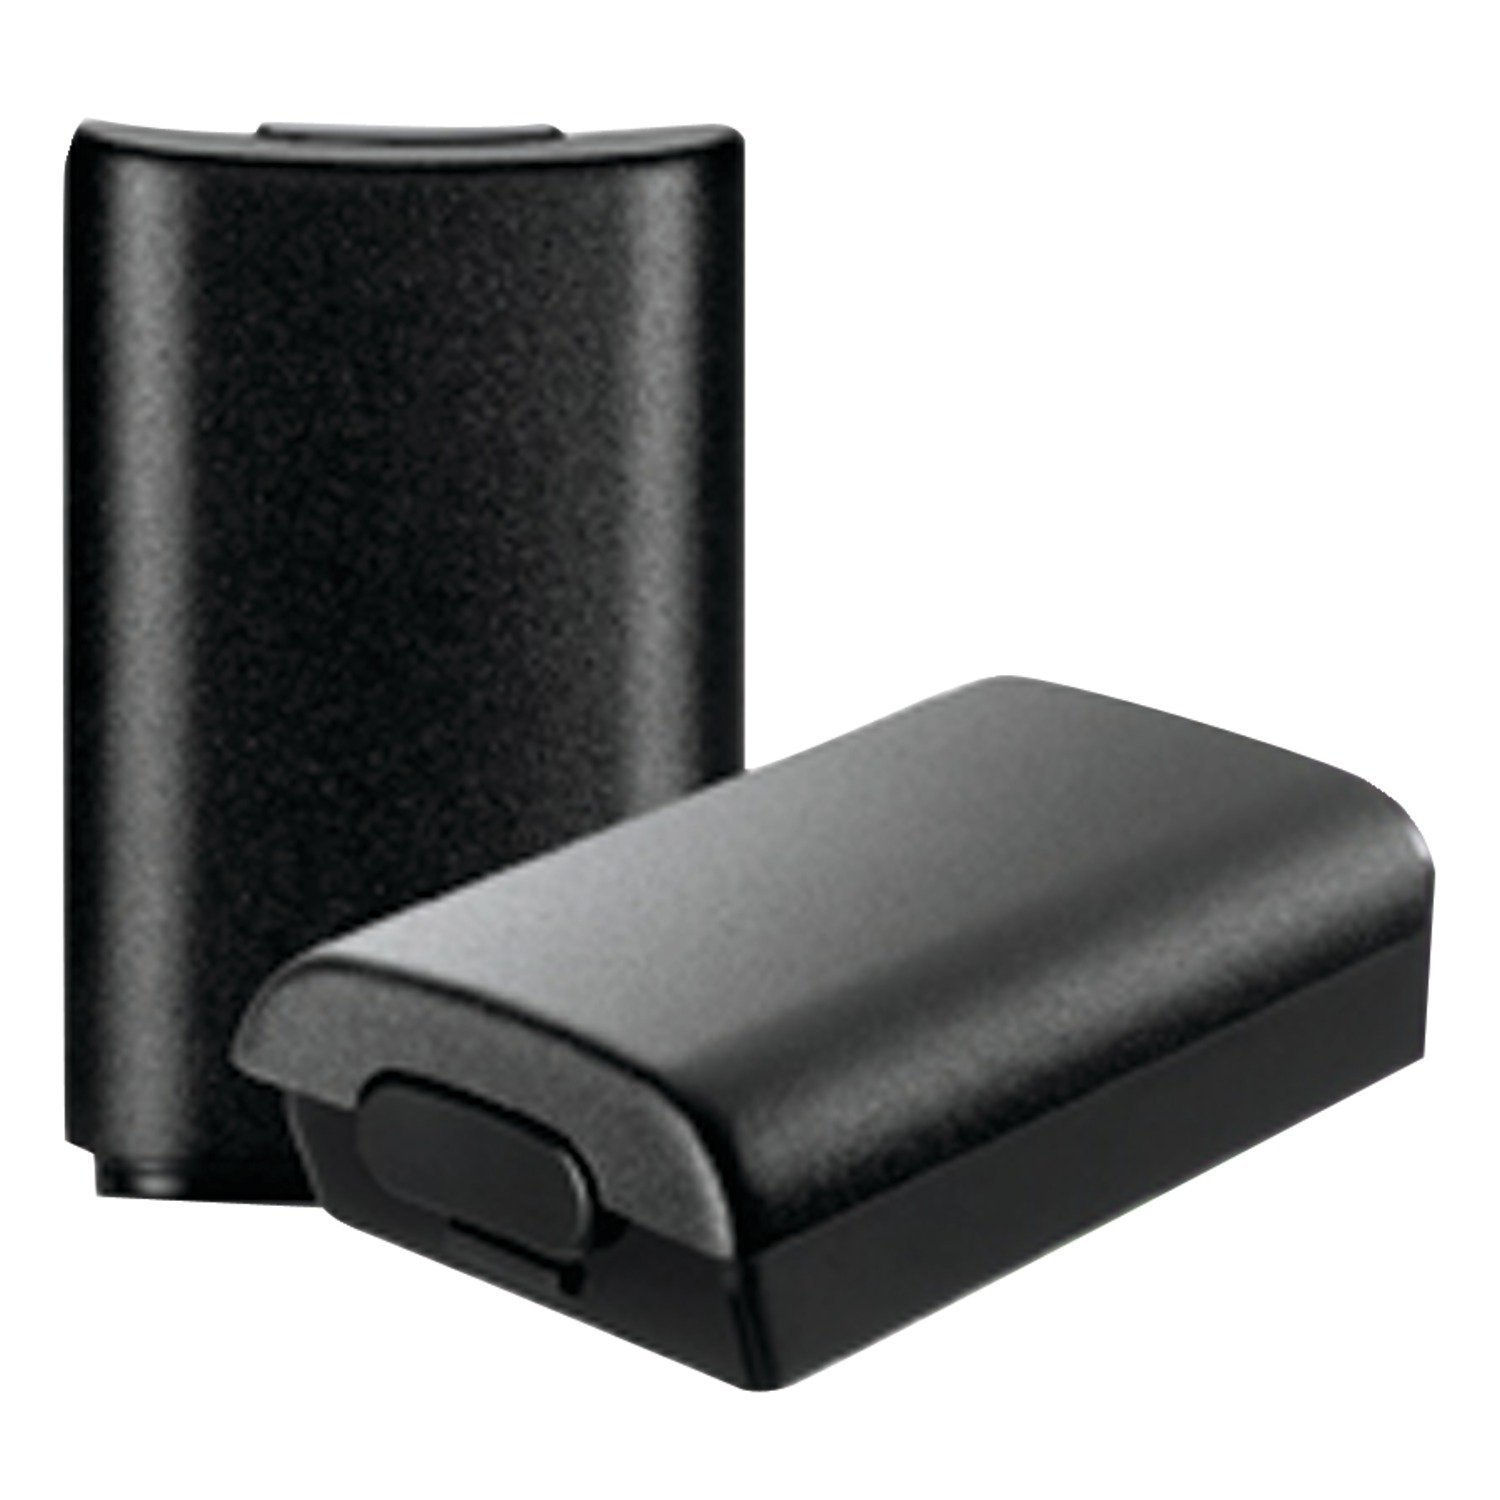 3rd Party Rechargeable Battery